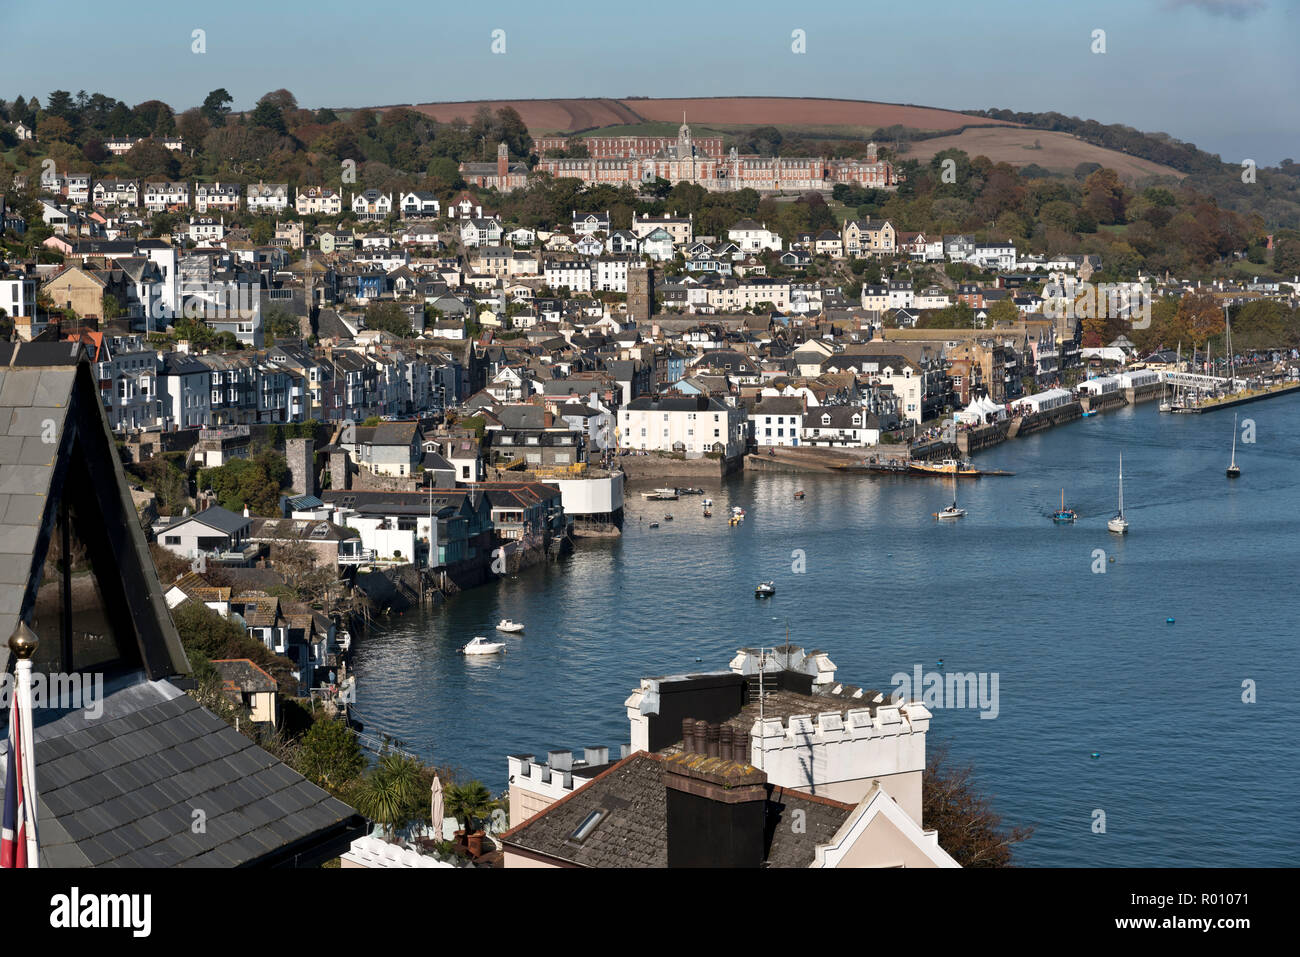 View over Dartmouth, Devon, including the Britannia Royal Naval College. Stock Photo